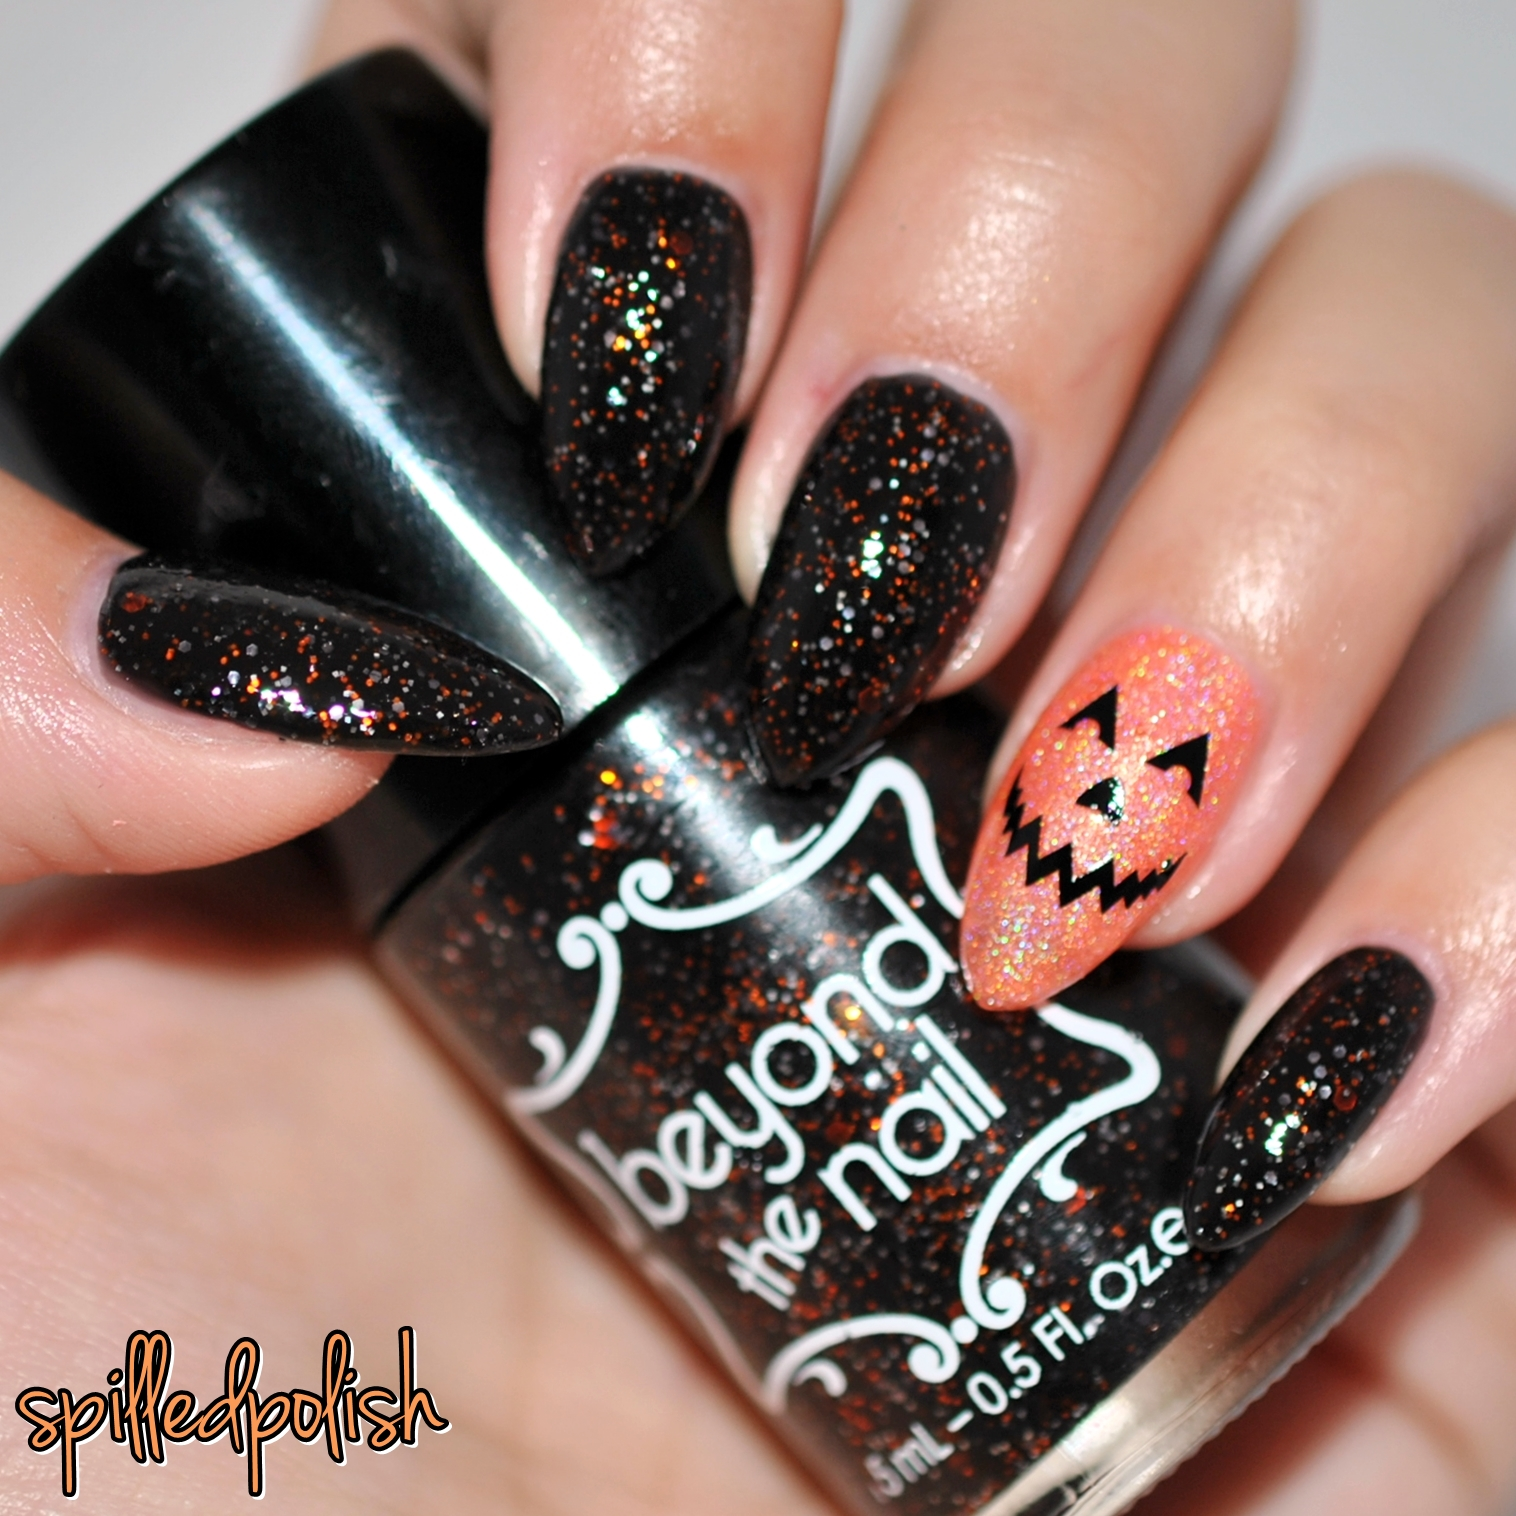 spilledpolish: More Pumpkin Face Halloween Nails!